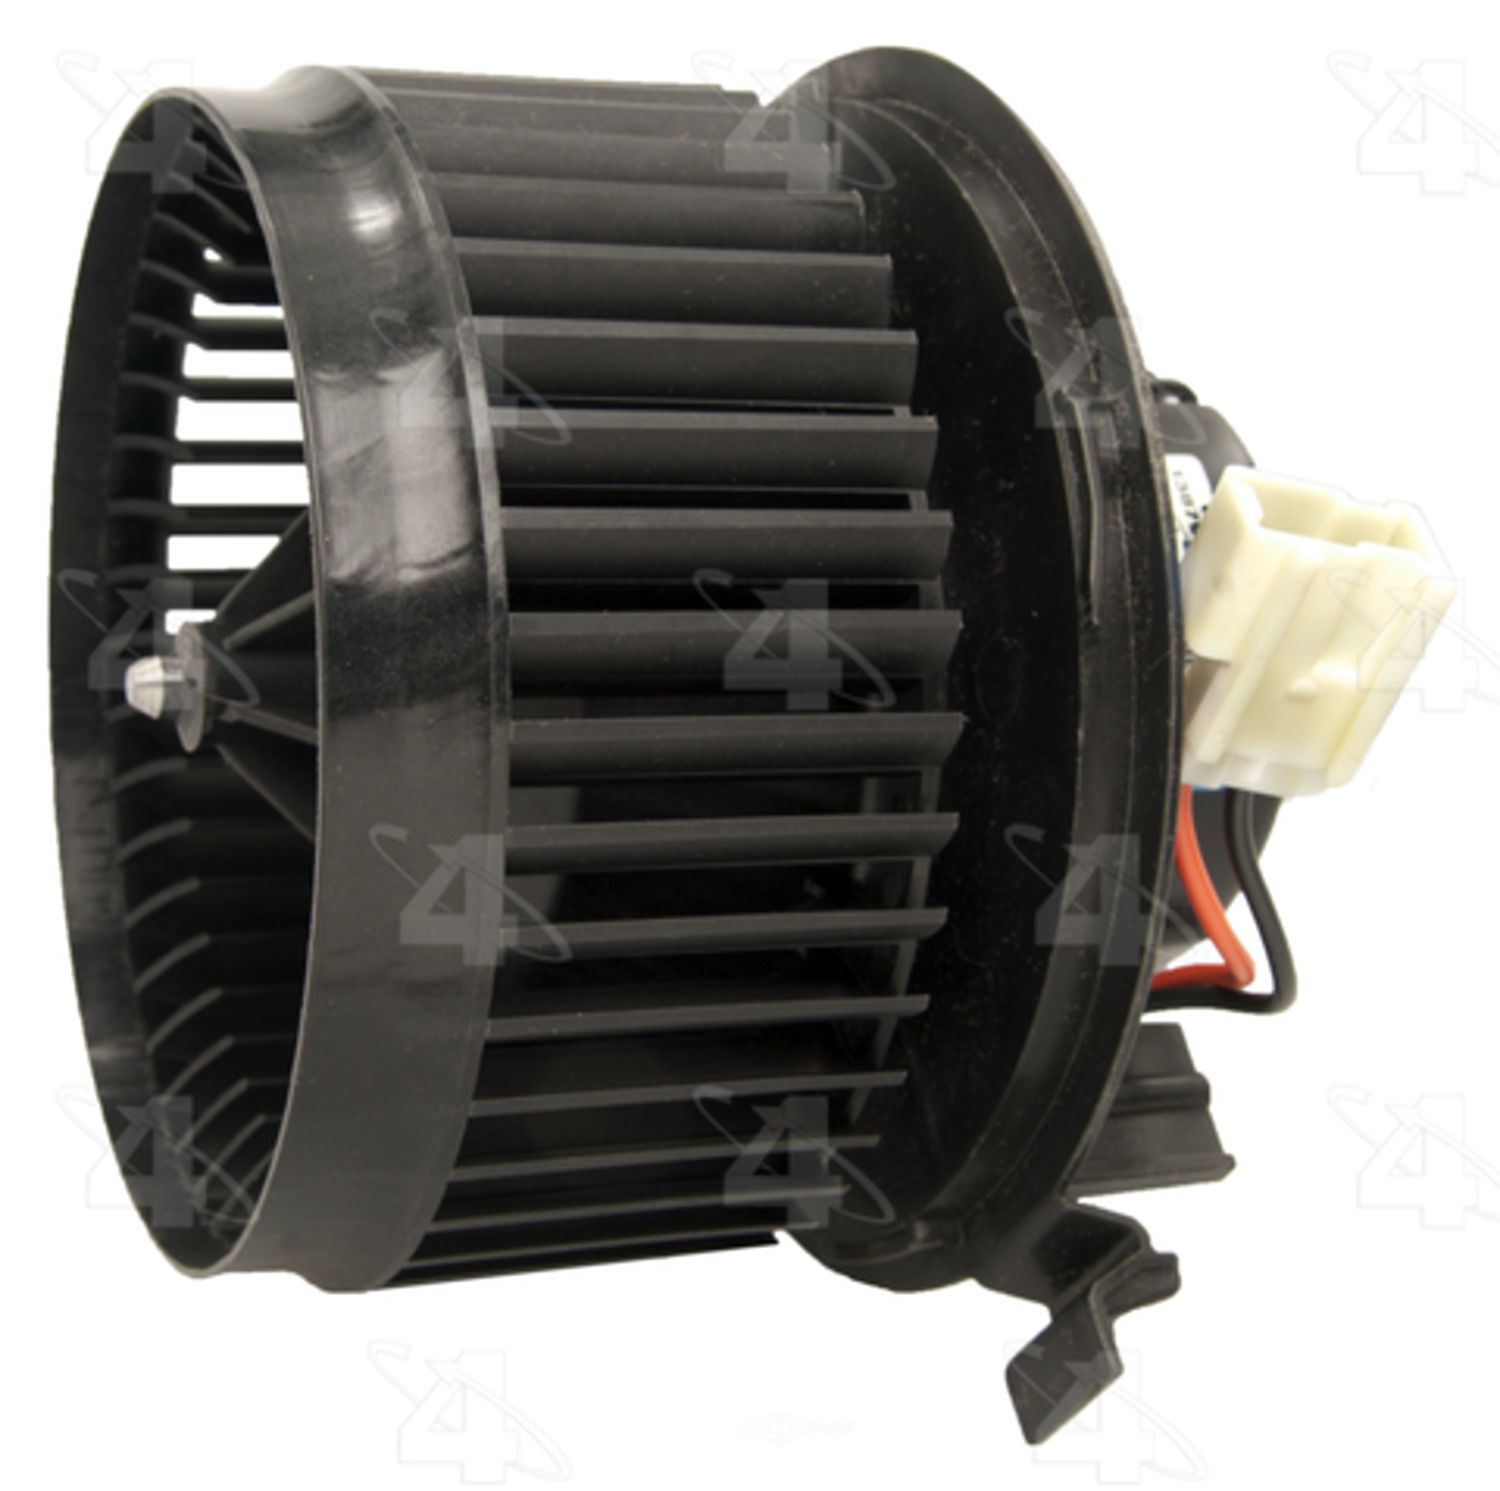 Hvac blower motor 4 seasons 75879 fits 07 12 nissan versa for Furnace motor replacement cost